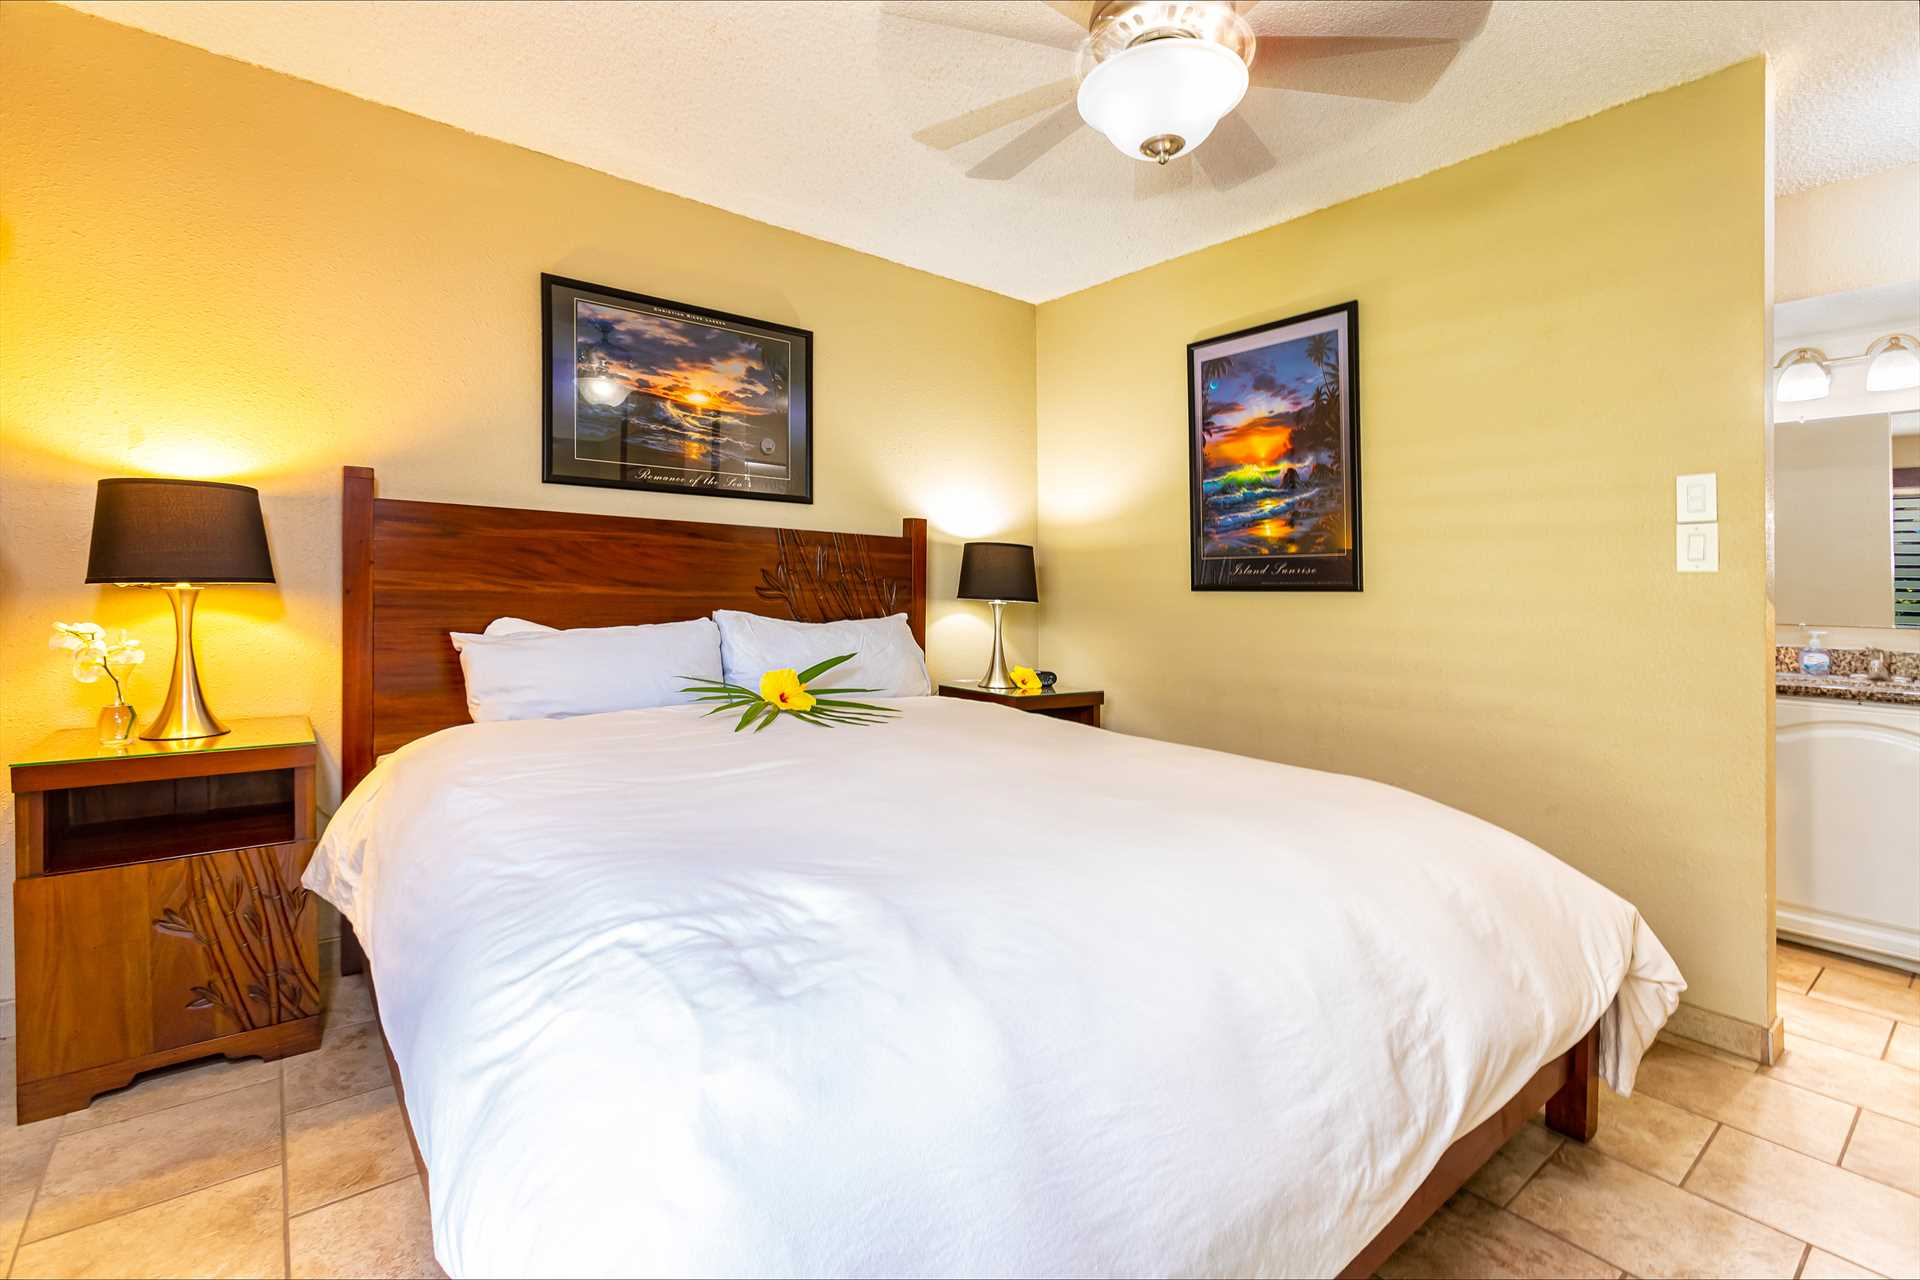 King size bed in the masters bedroom